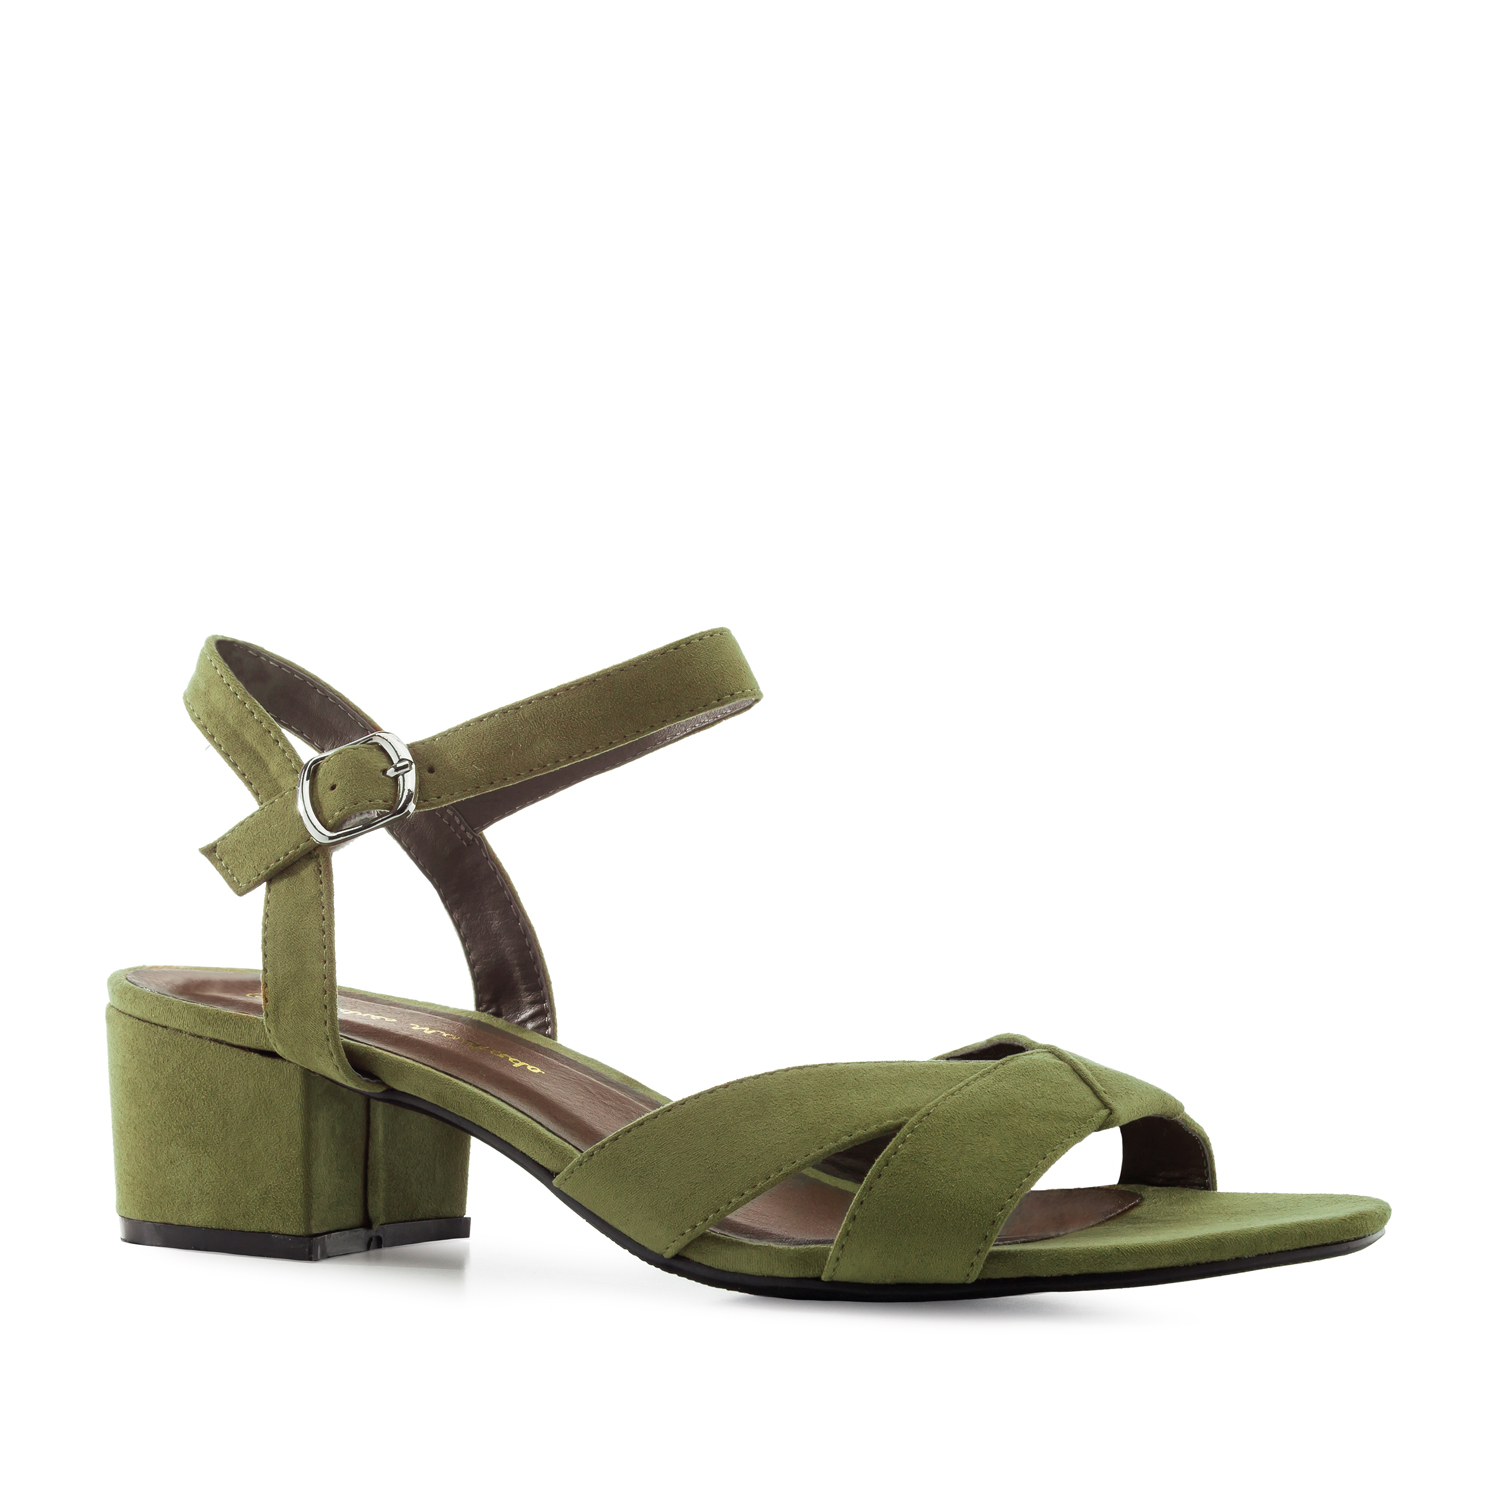 Low-Heeled Sandals in Olive-Green Suede